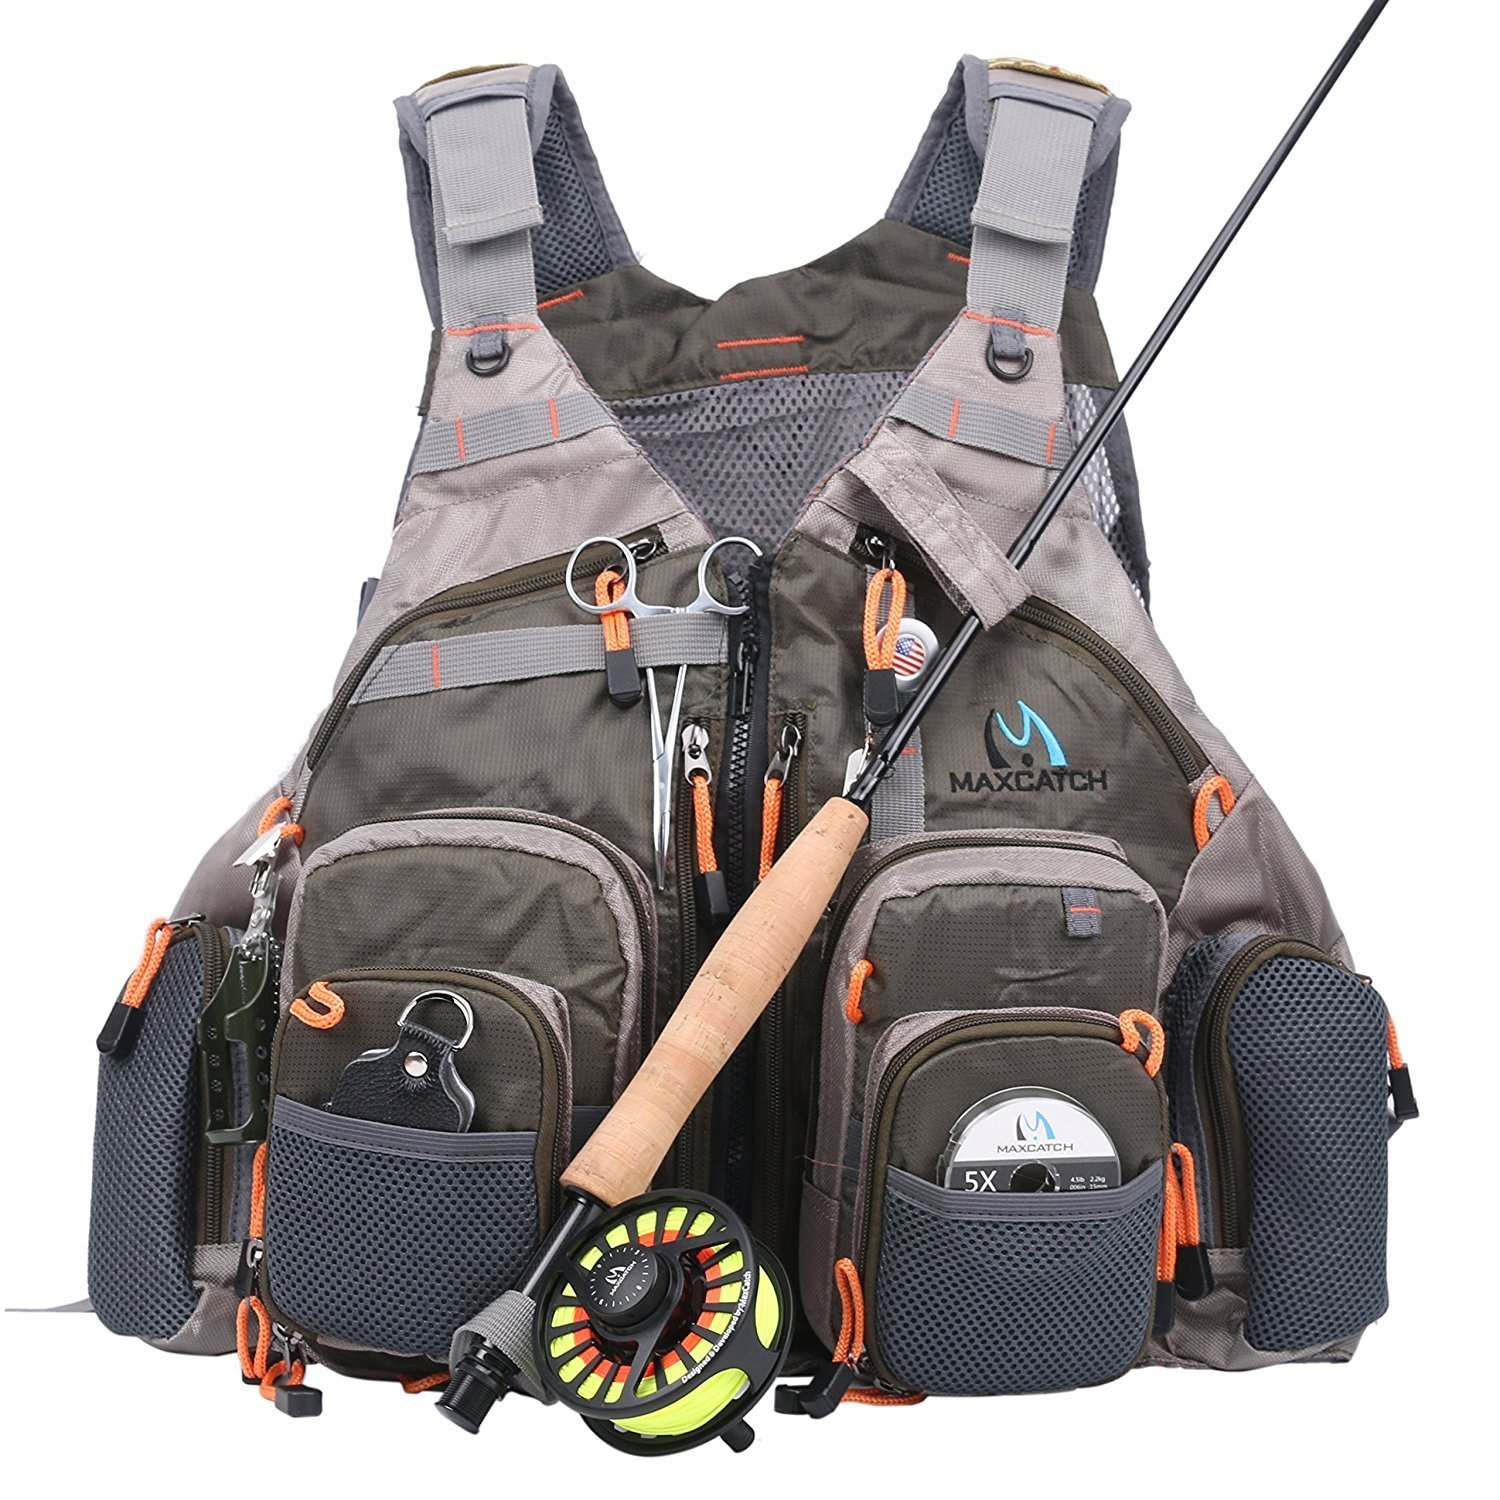 Maxcatch fly fishing vest mesh vest free size deals from for Fishing vest amazon